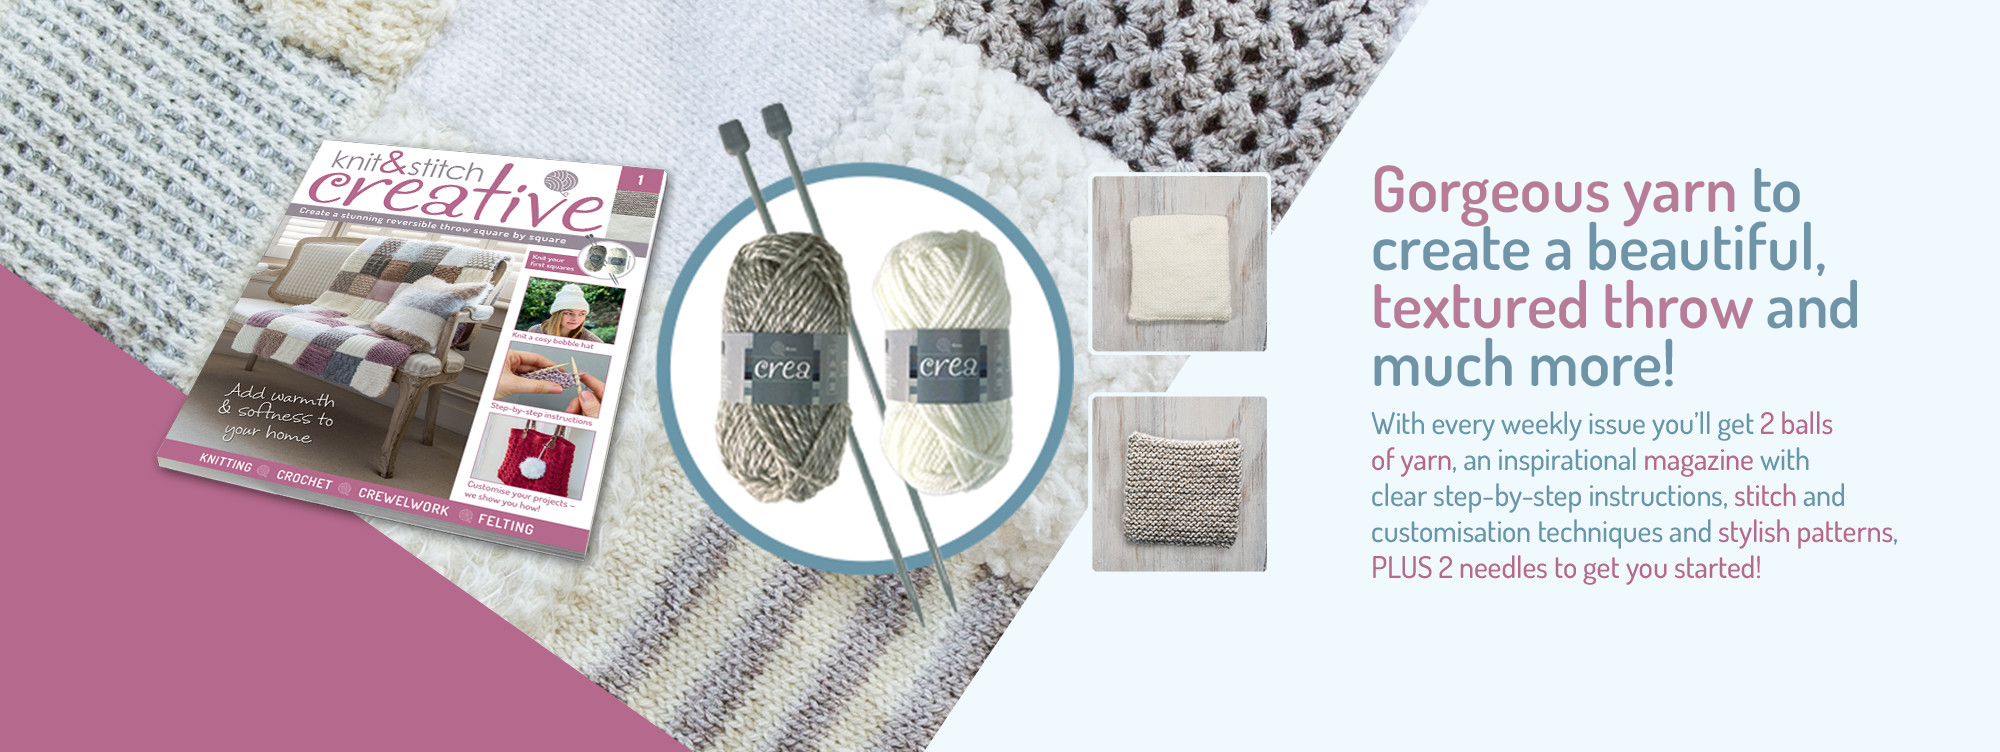 Everything you need to create a beautiful textured throw and much more!